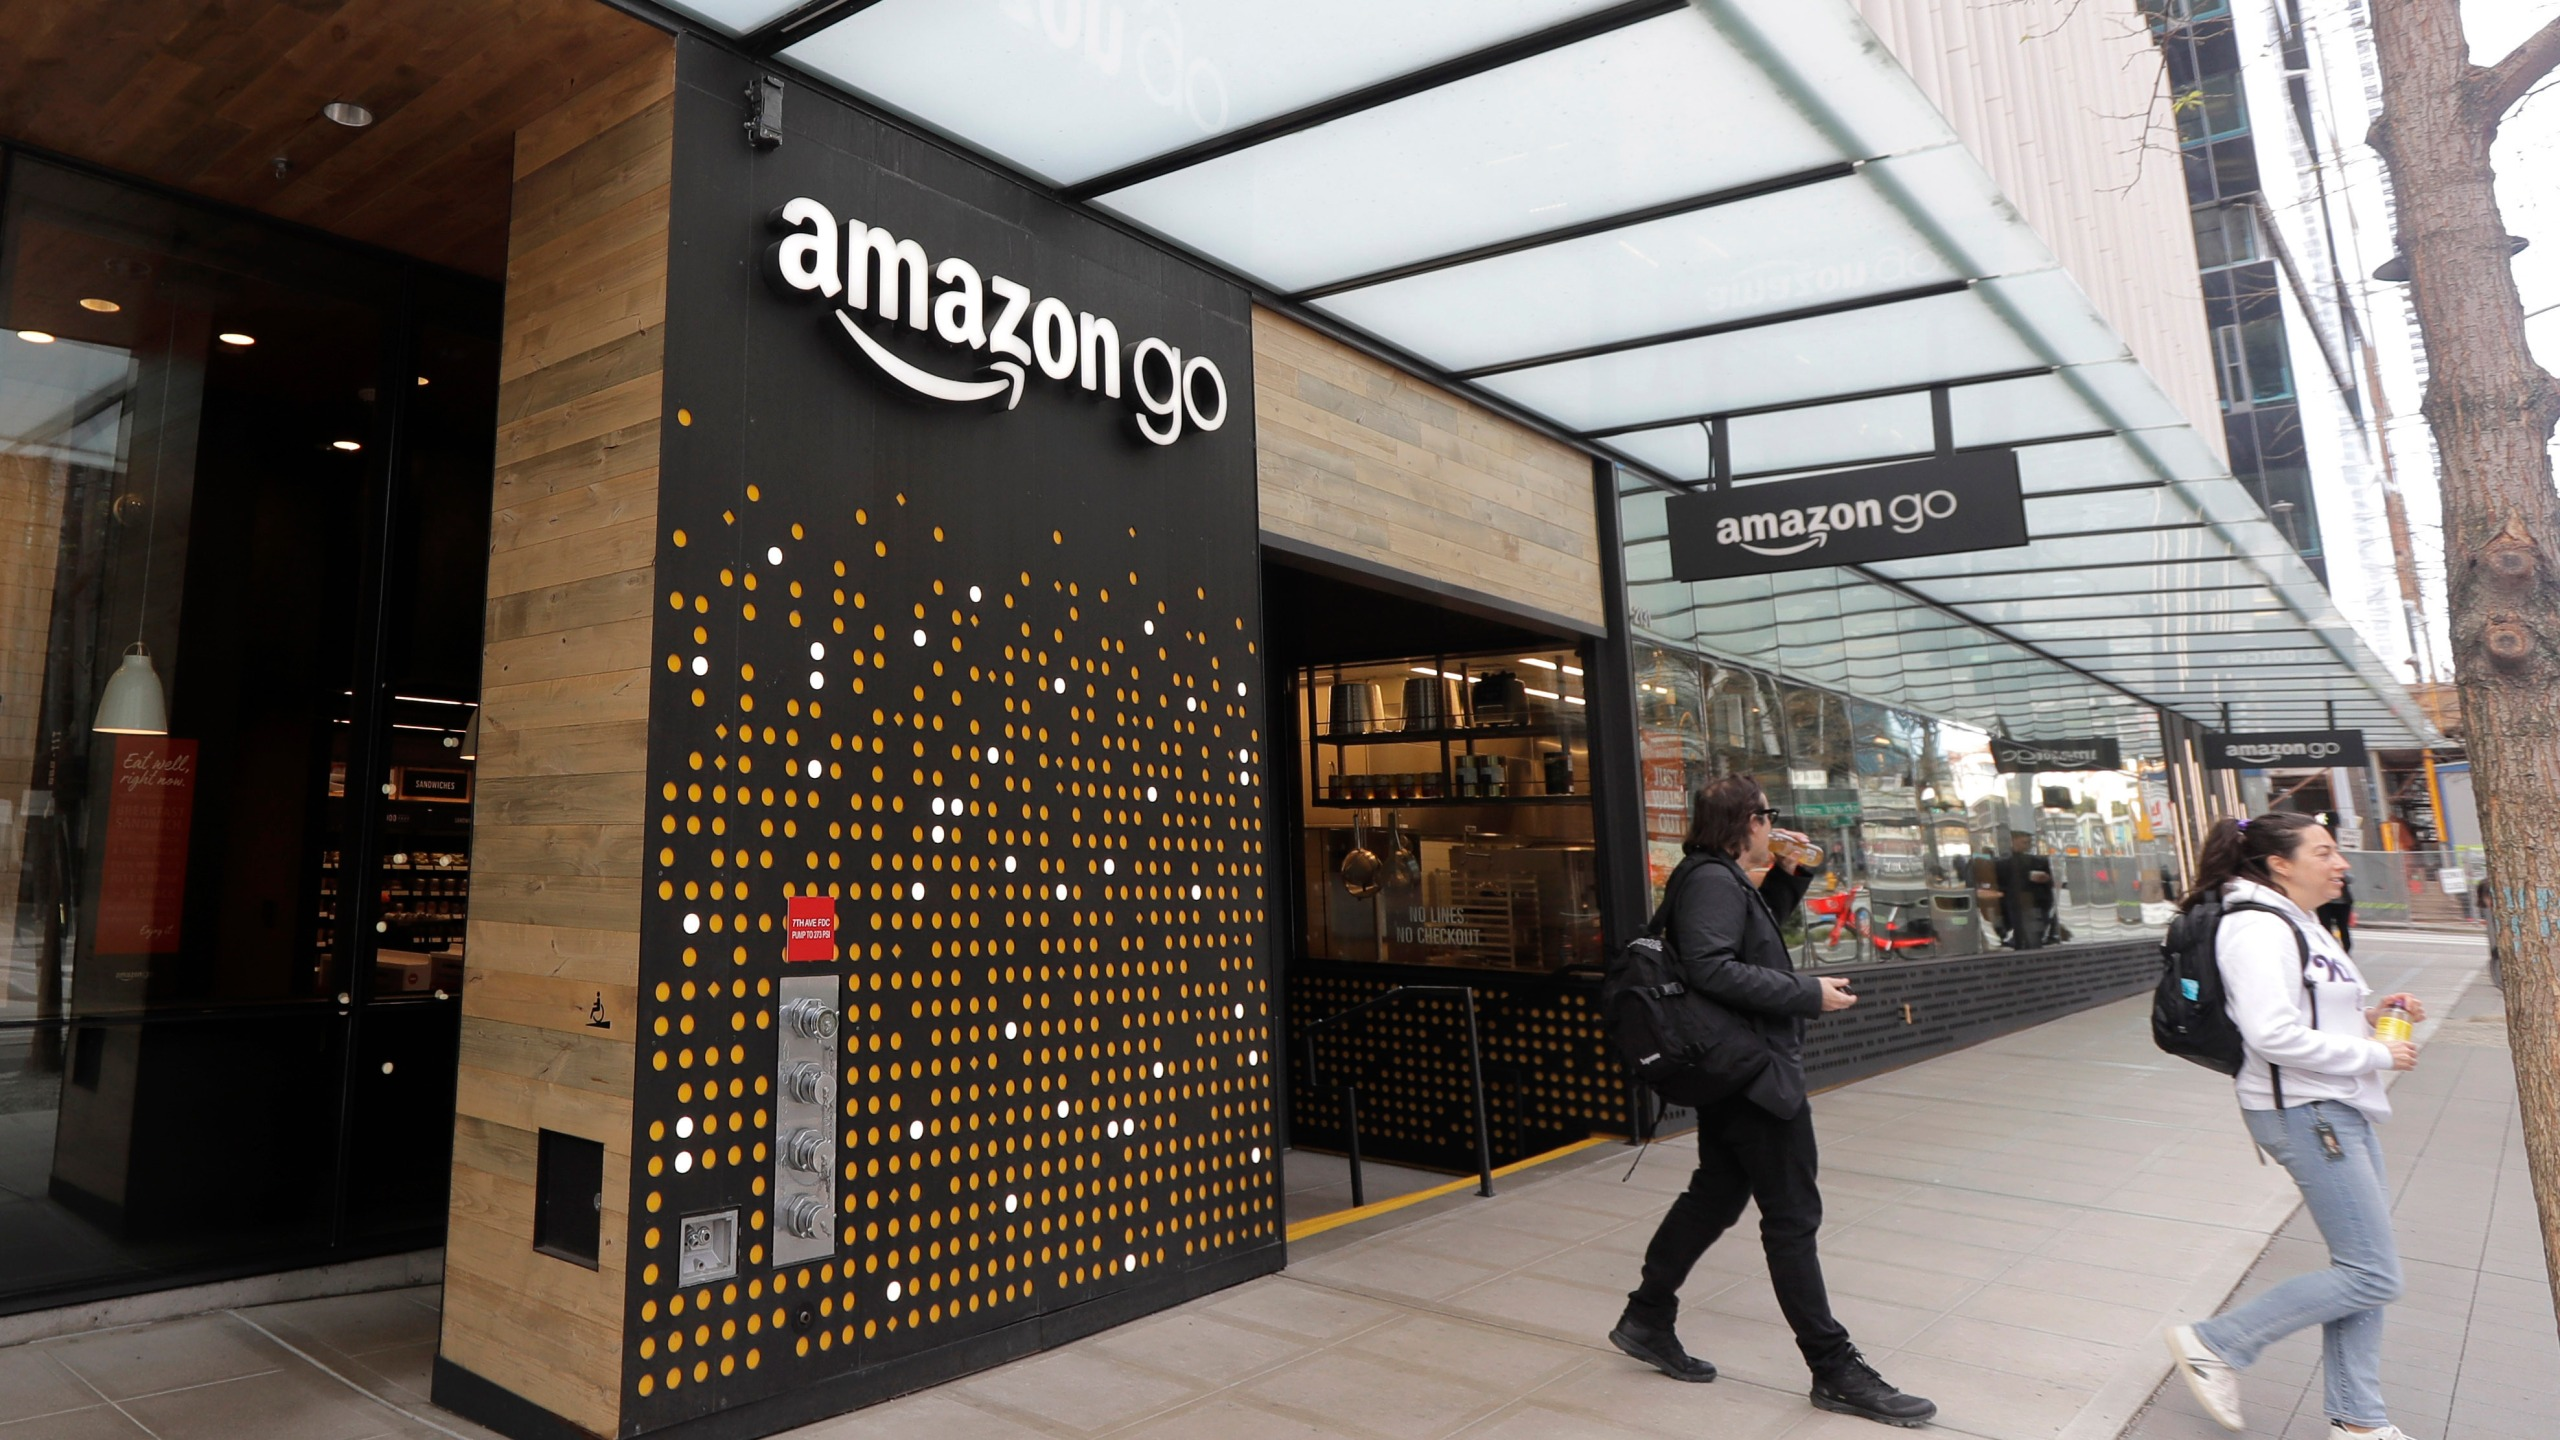 In this March 4, 2020 file photo, people walk out of an Amazon Go store, in Seattle. Amazon said Wednesday, April 21, 2021 that it is rolling out its pay-by-palm technology to some of its Whole Foods supermarkets. The technology, called Amazon One, lets shoppers scan the palm of their hand and connect it to their credit card or Amazon accounts. (AP Photo/Ted S. Warren, File)